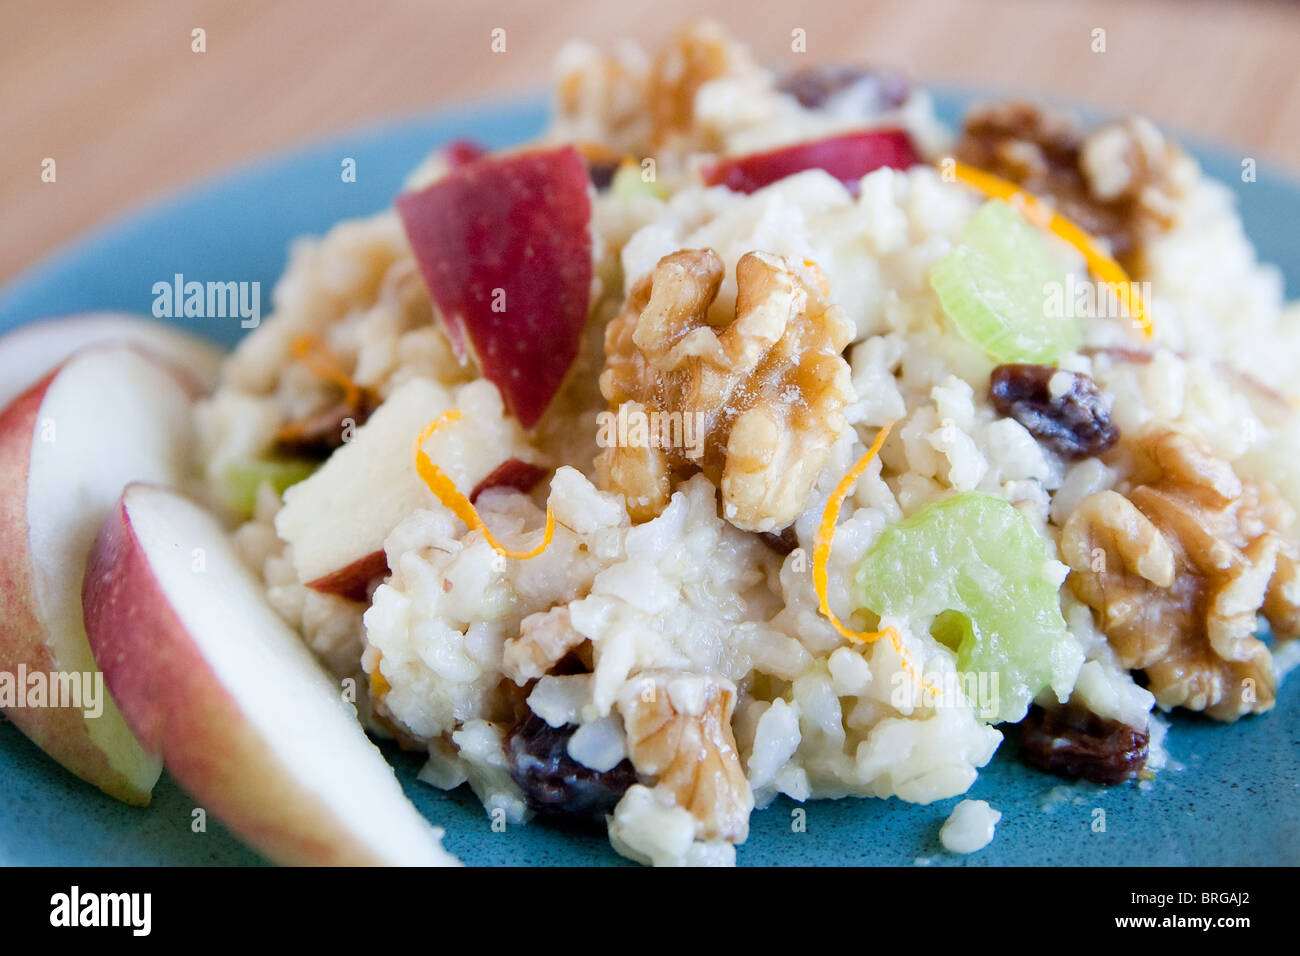 closeup plate of apple walnut brown rice salad on a blue plate with raisins and orange zest topping - Stock Image